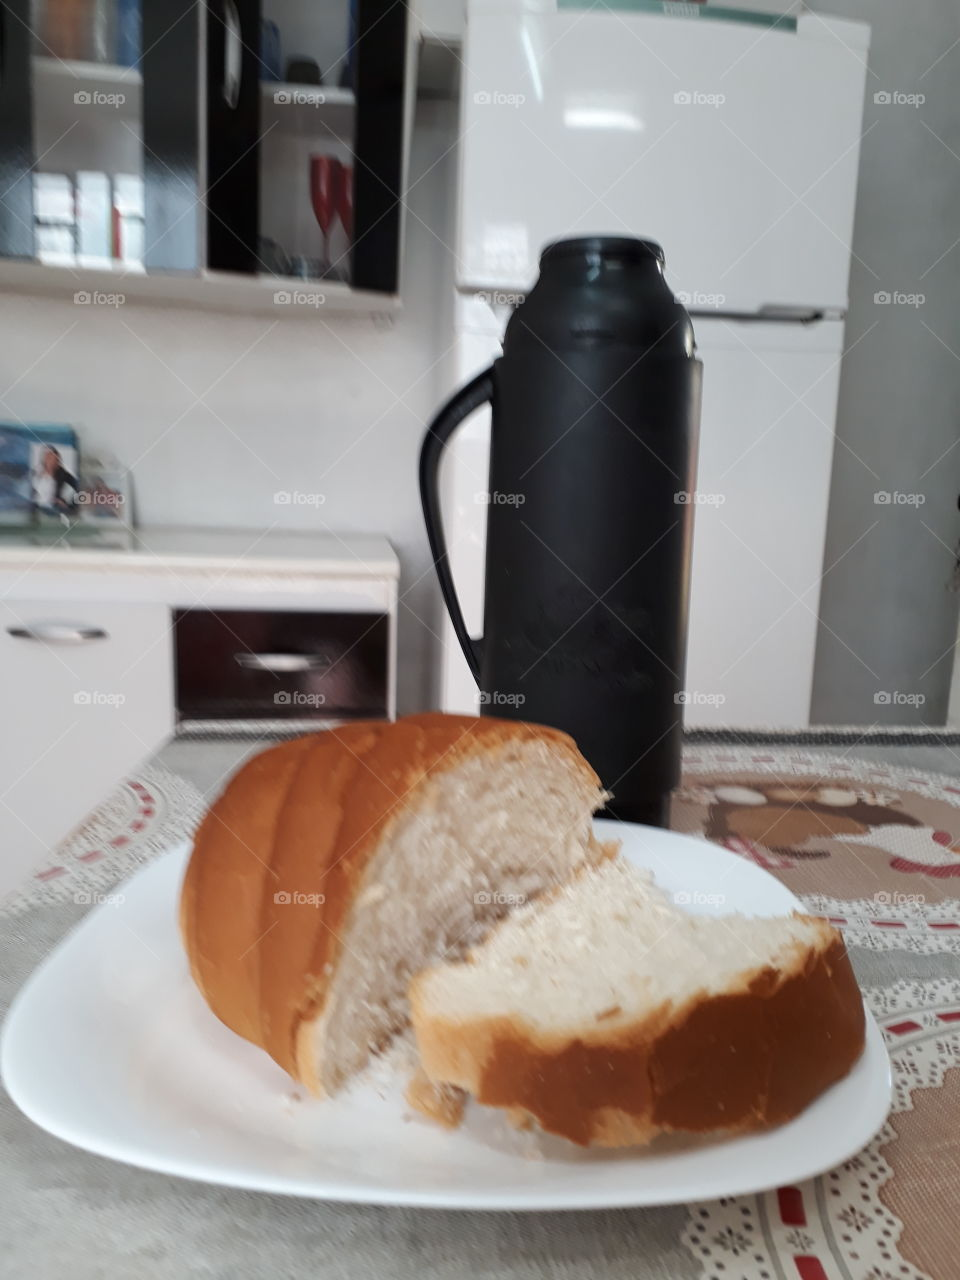 Bread with coffe